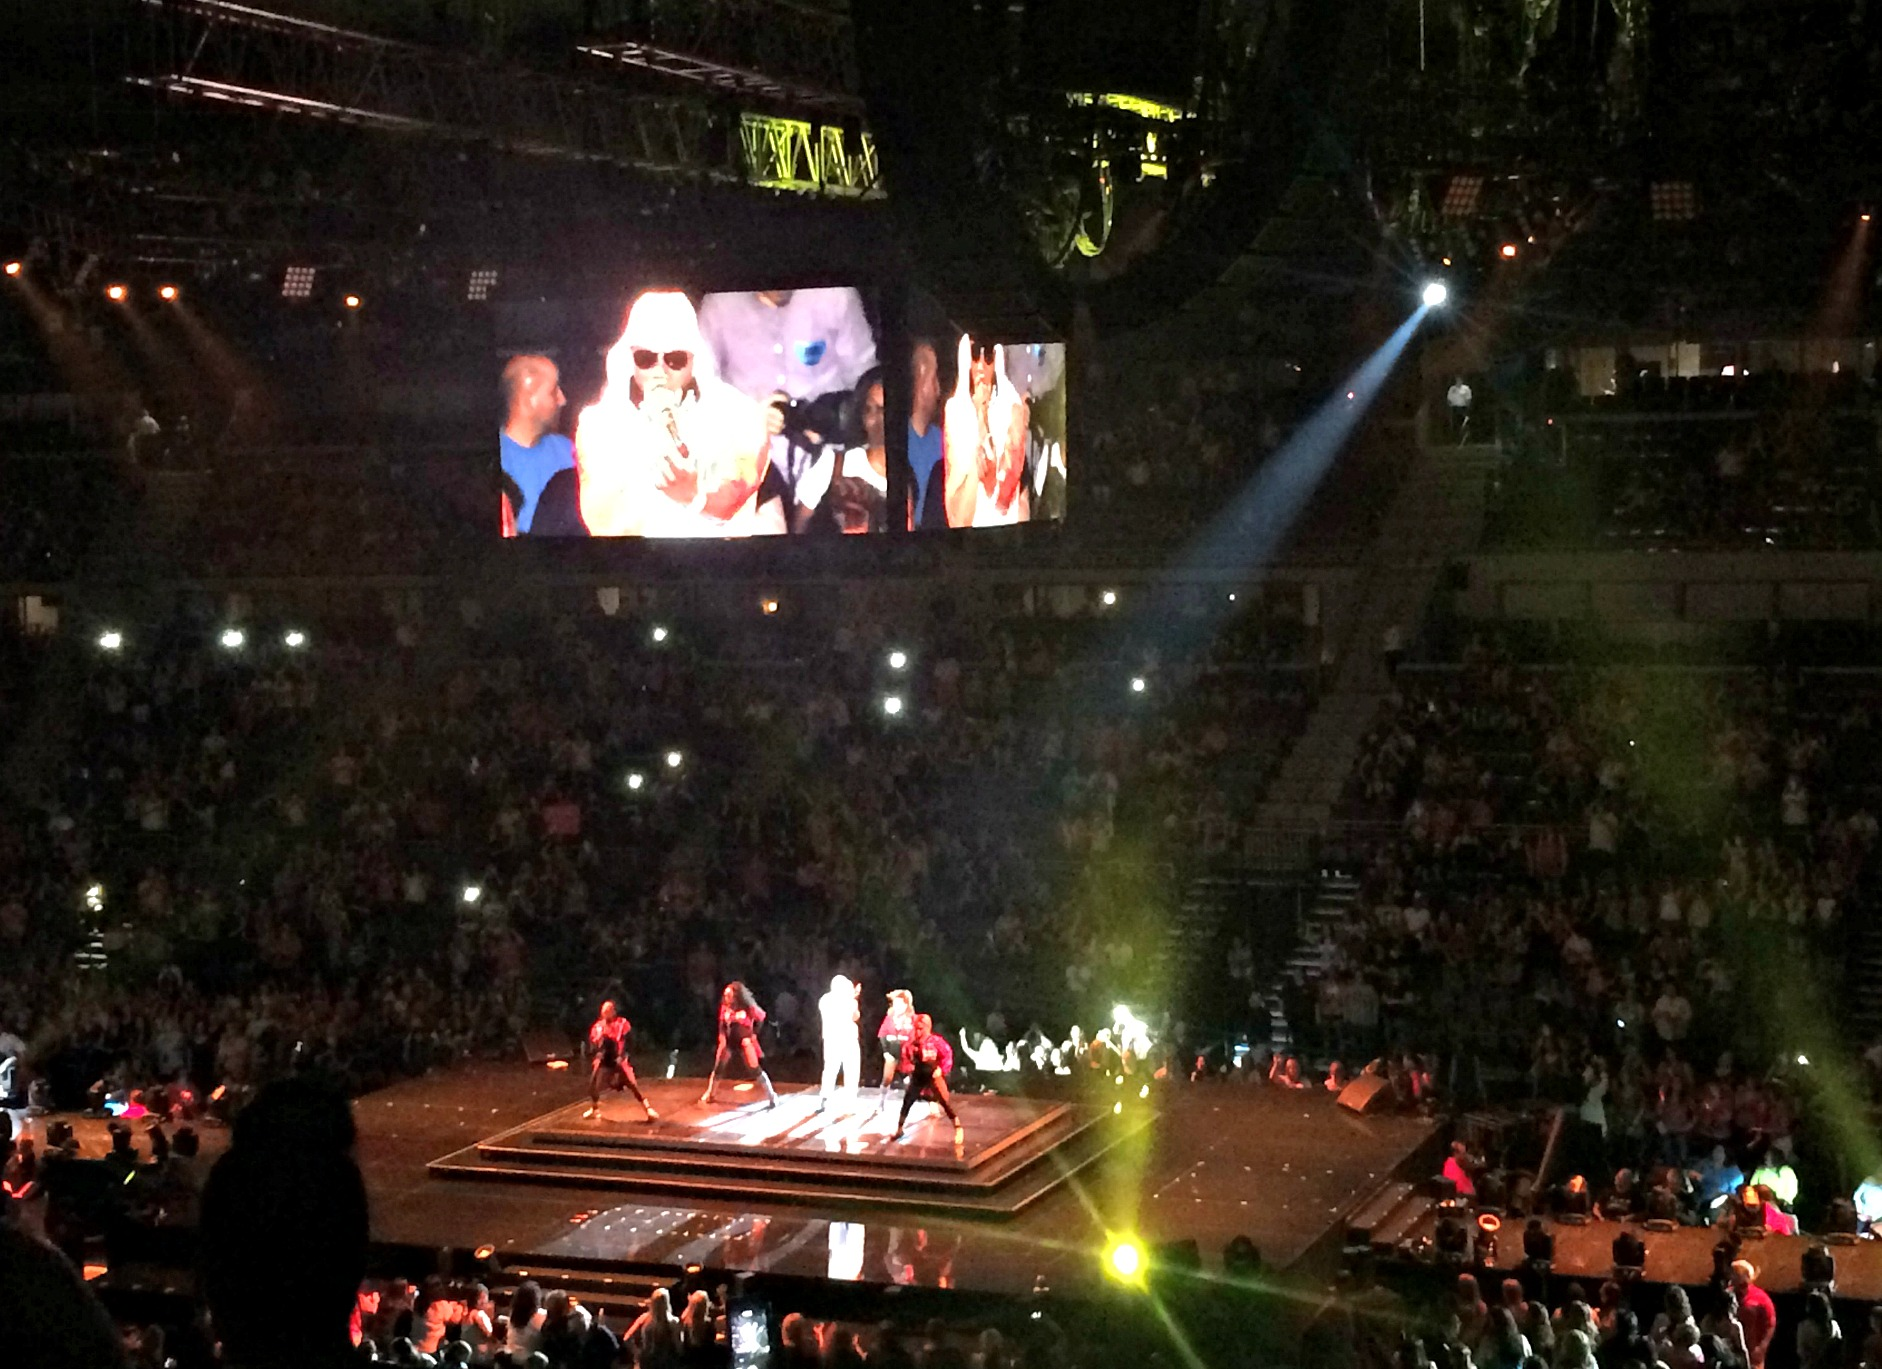 nelly opening for nkotb